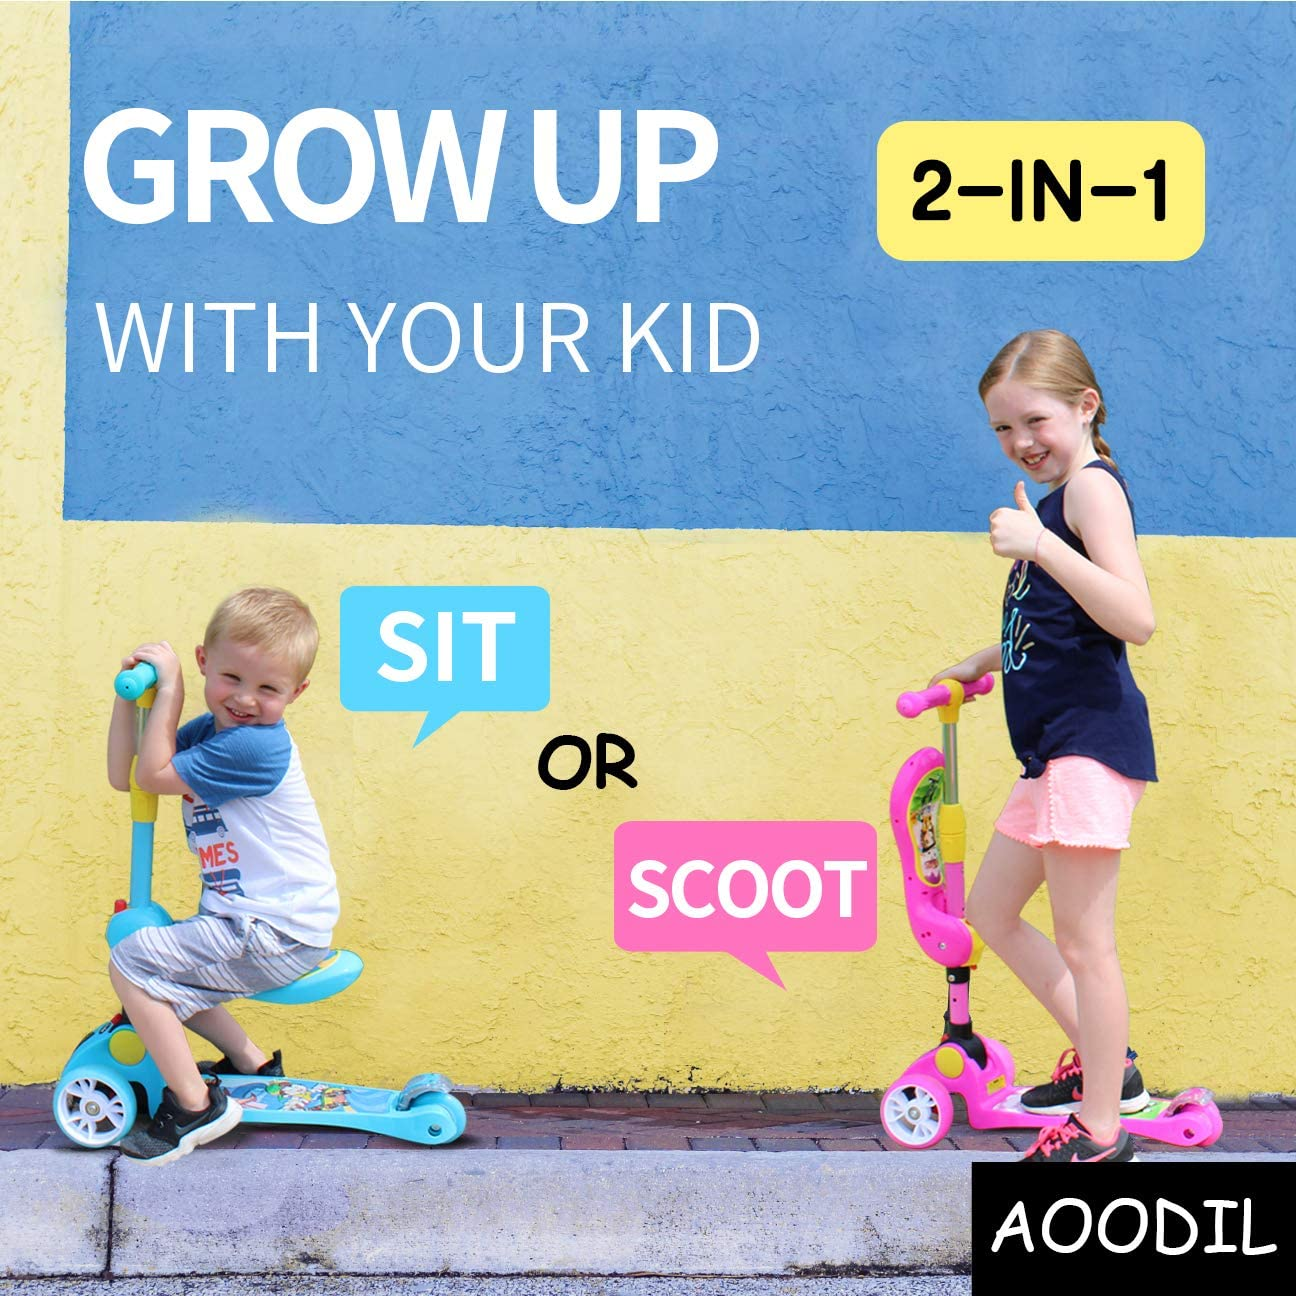 AOODIL 2-in-1 Kick Scooter for Kids Toddler 3 Wheel Scooter for Boys Girls Kids Scooter with LED Light Up Wheels Adjustable Height Folding Scooter for Children from 2 to 12 Years Old